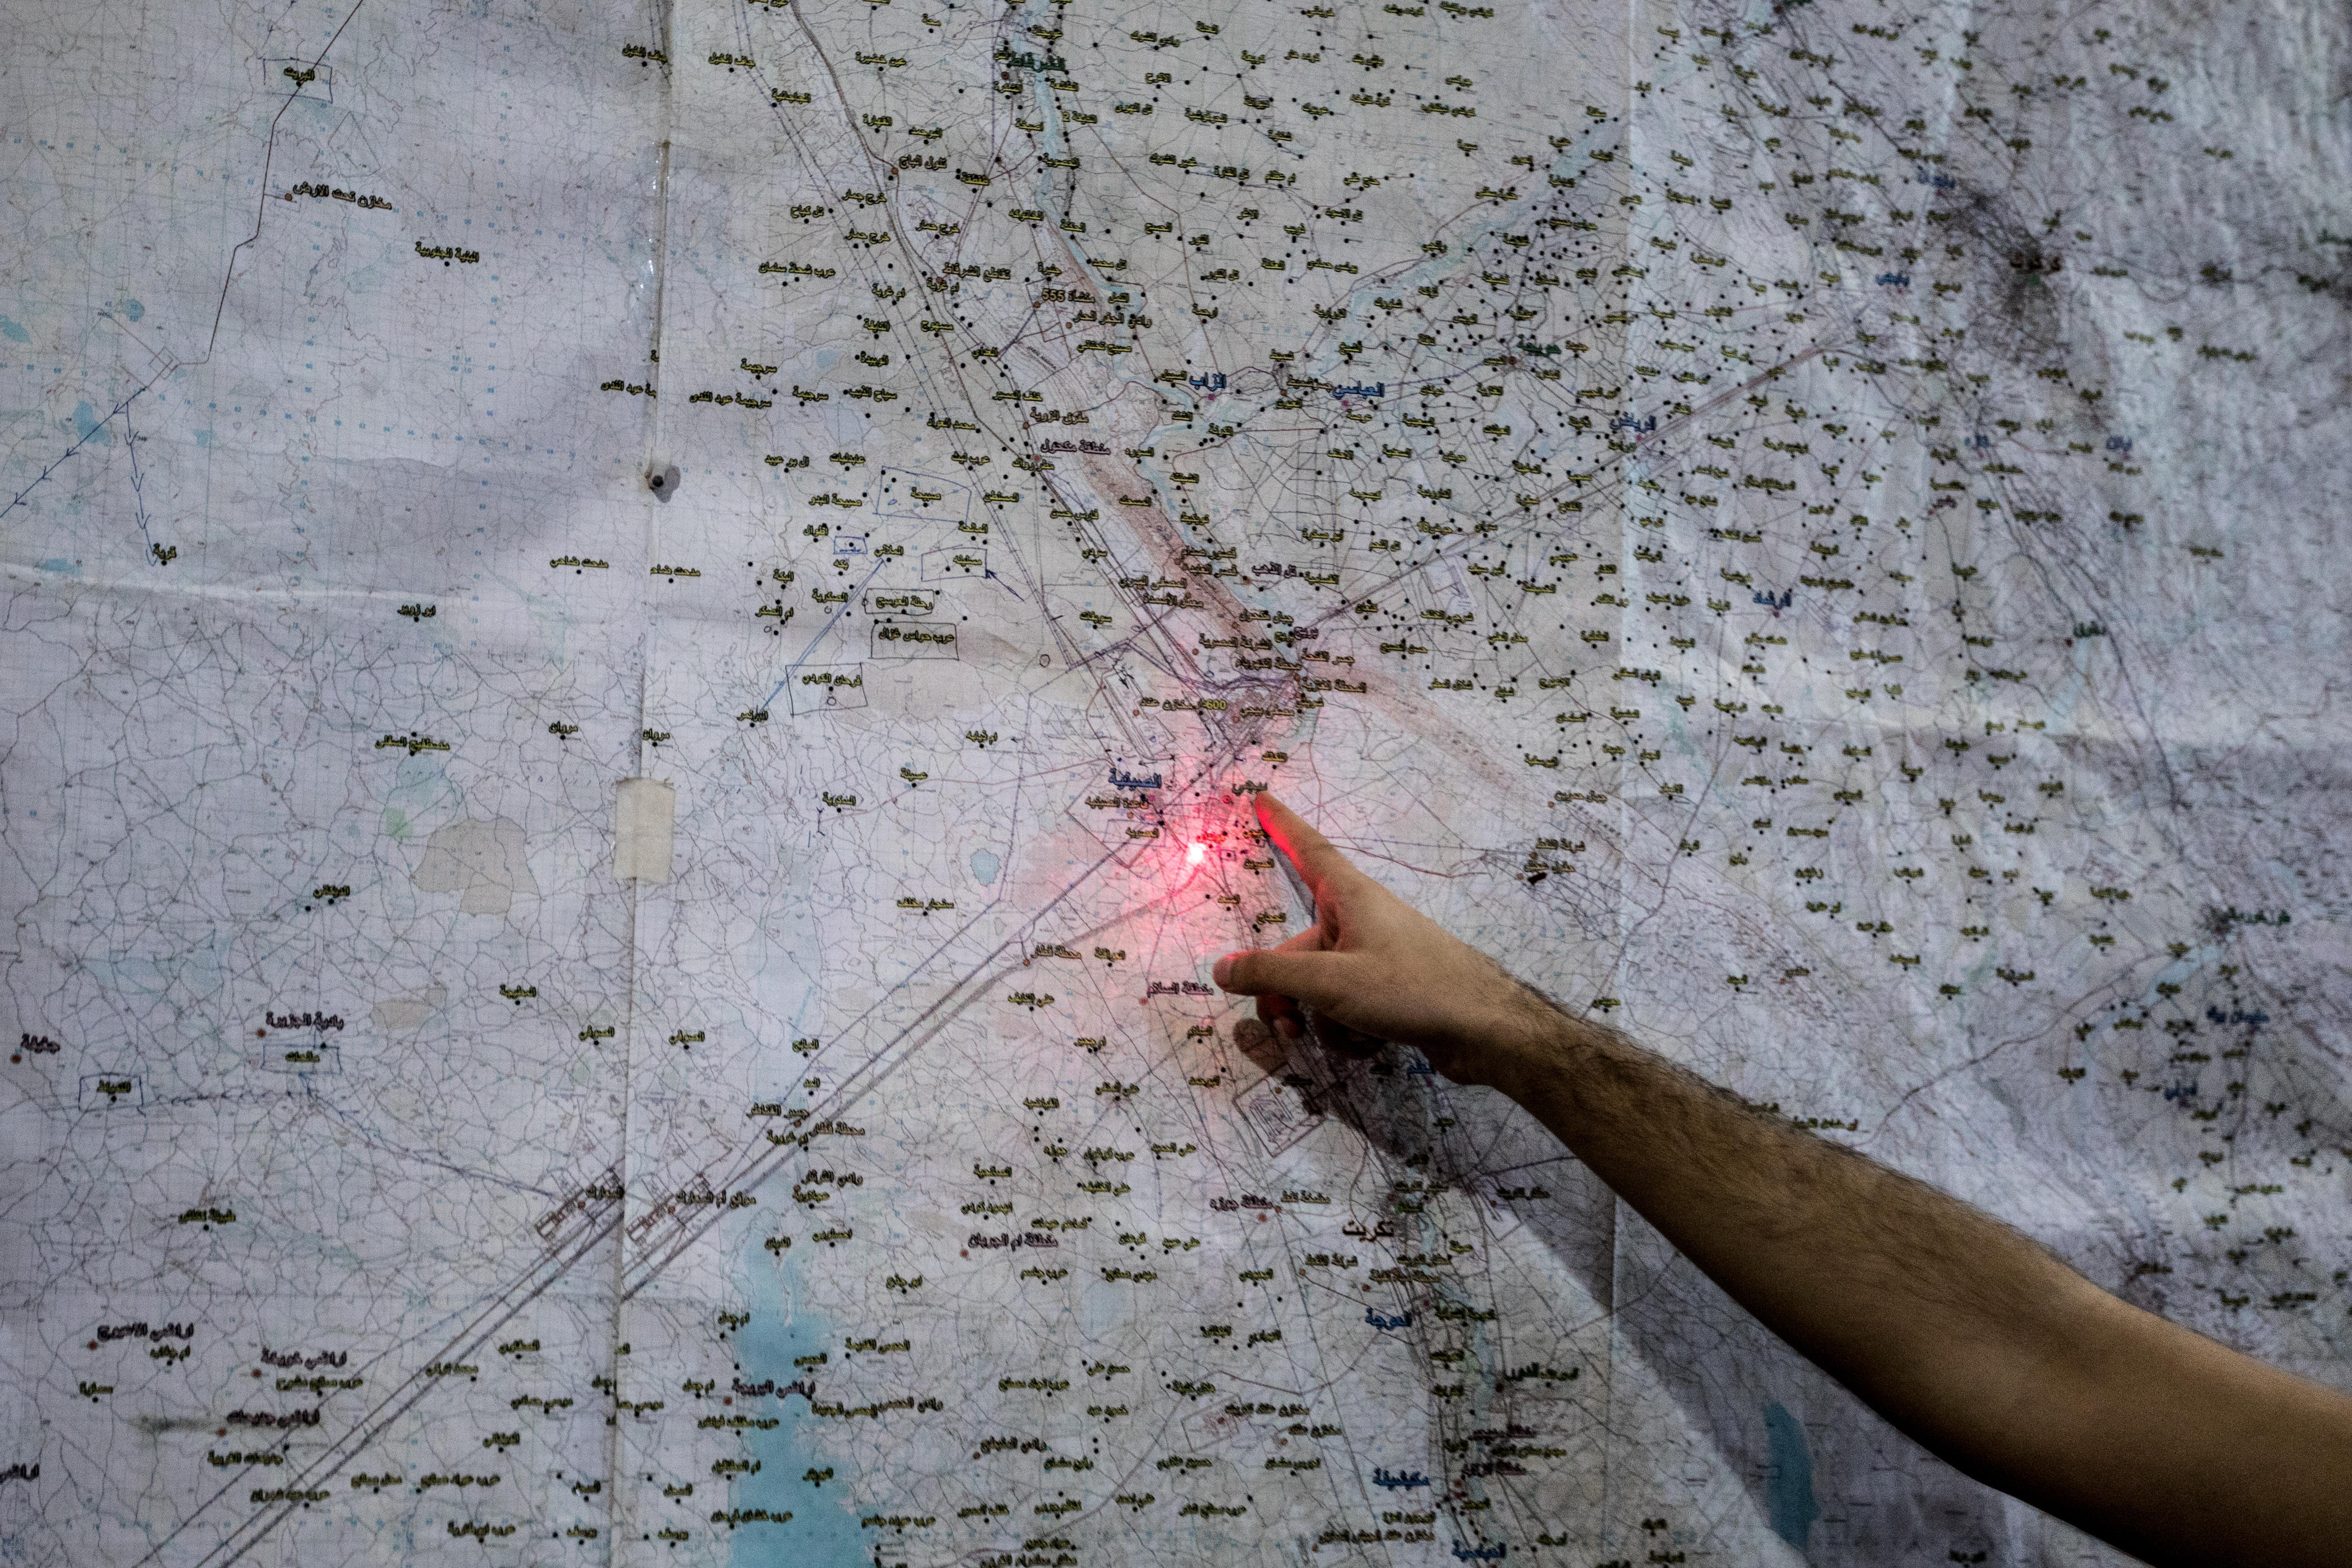 <p><em><strong>Baiji, Iraq  </strong></em> At headquarters, Hajji Imad Karim al-Shahmani, commander of the Shiite Hashed al-Shaabi units in Baiji, outlines details of his strategies in the fight against ISIS on a military map. (Photo: Sebastian Backhaus) </p>